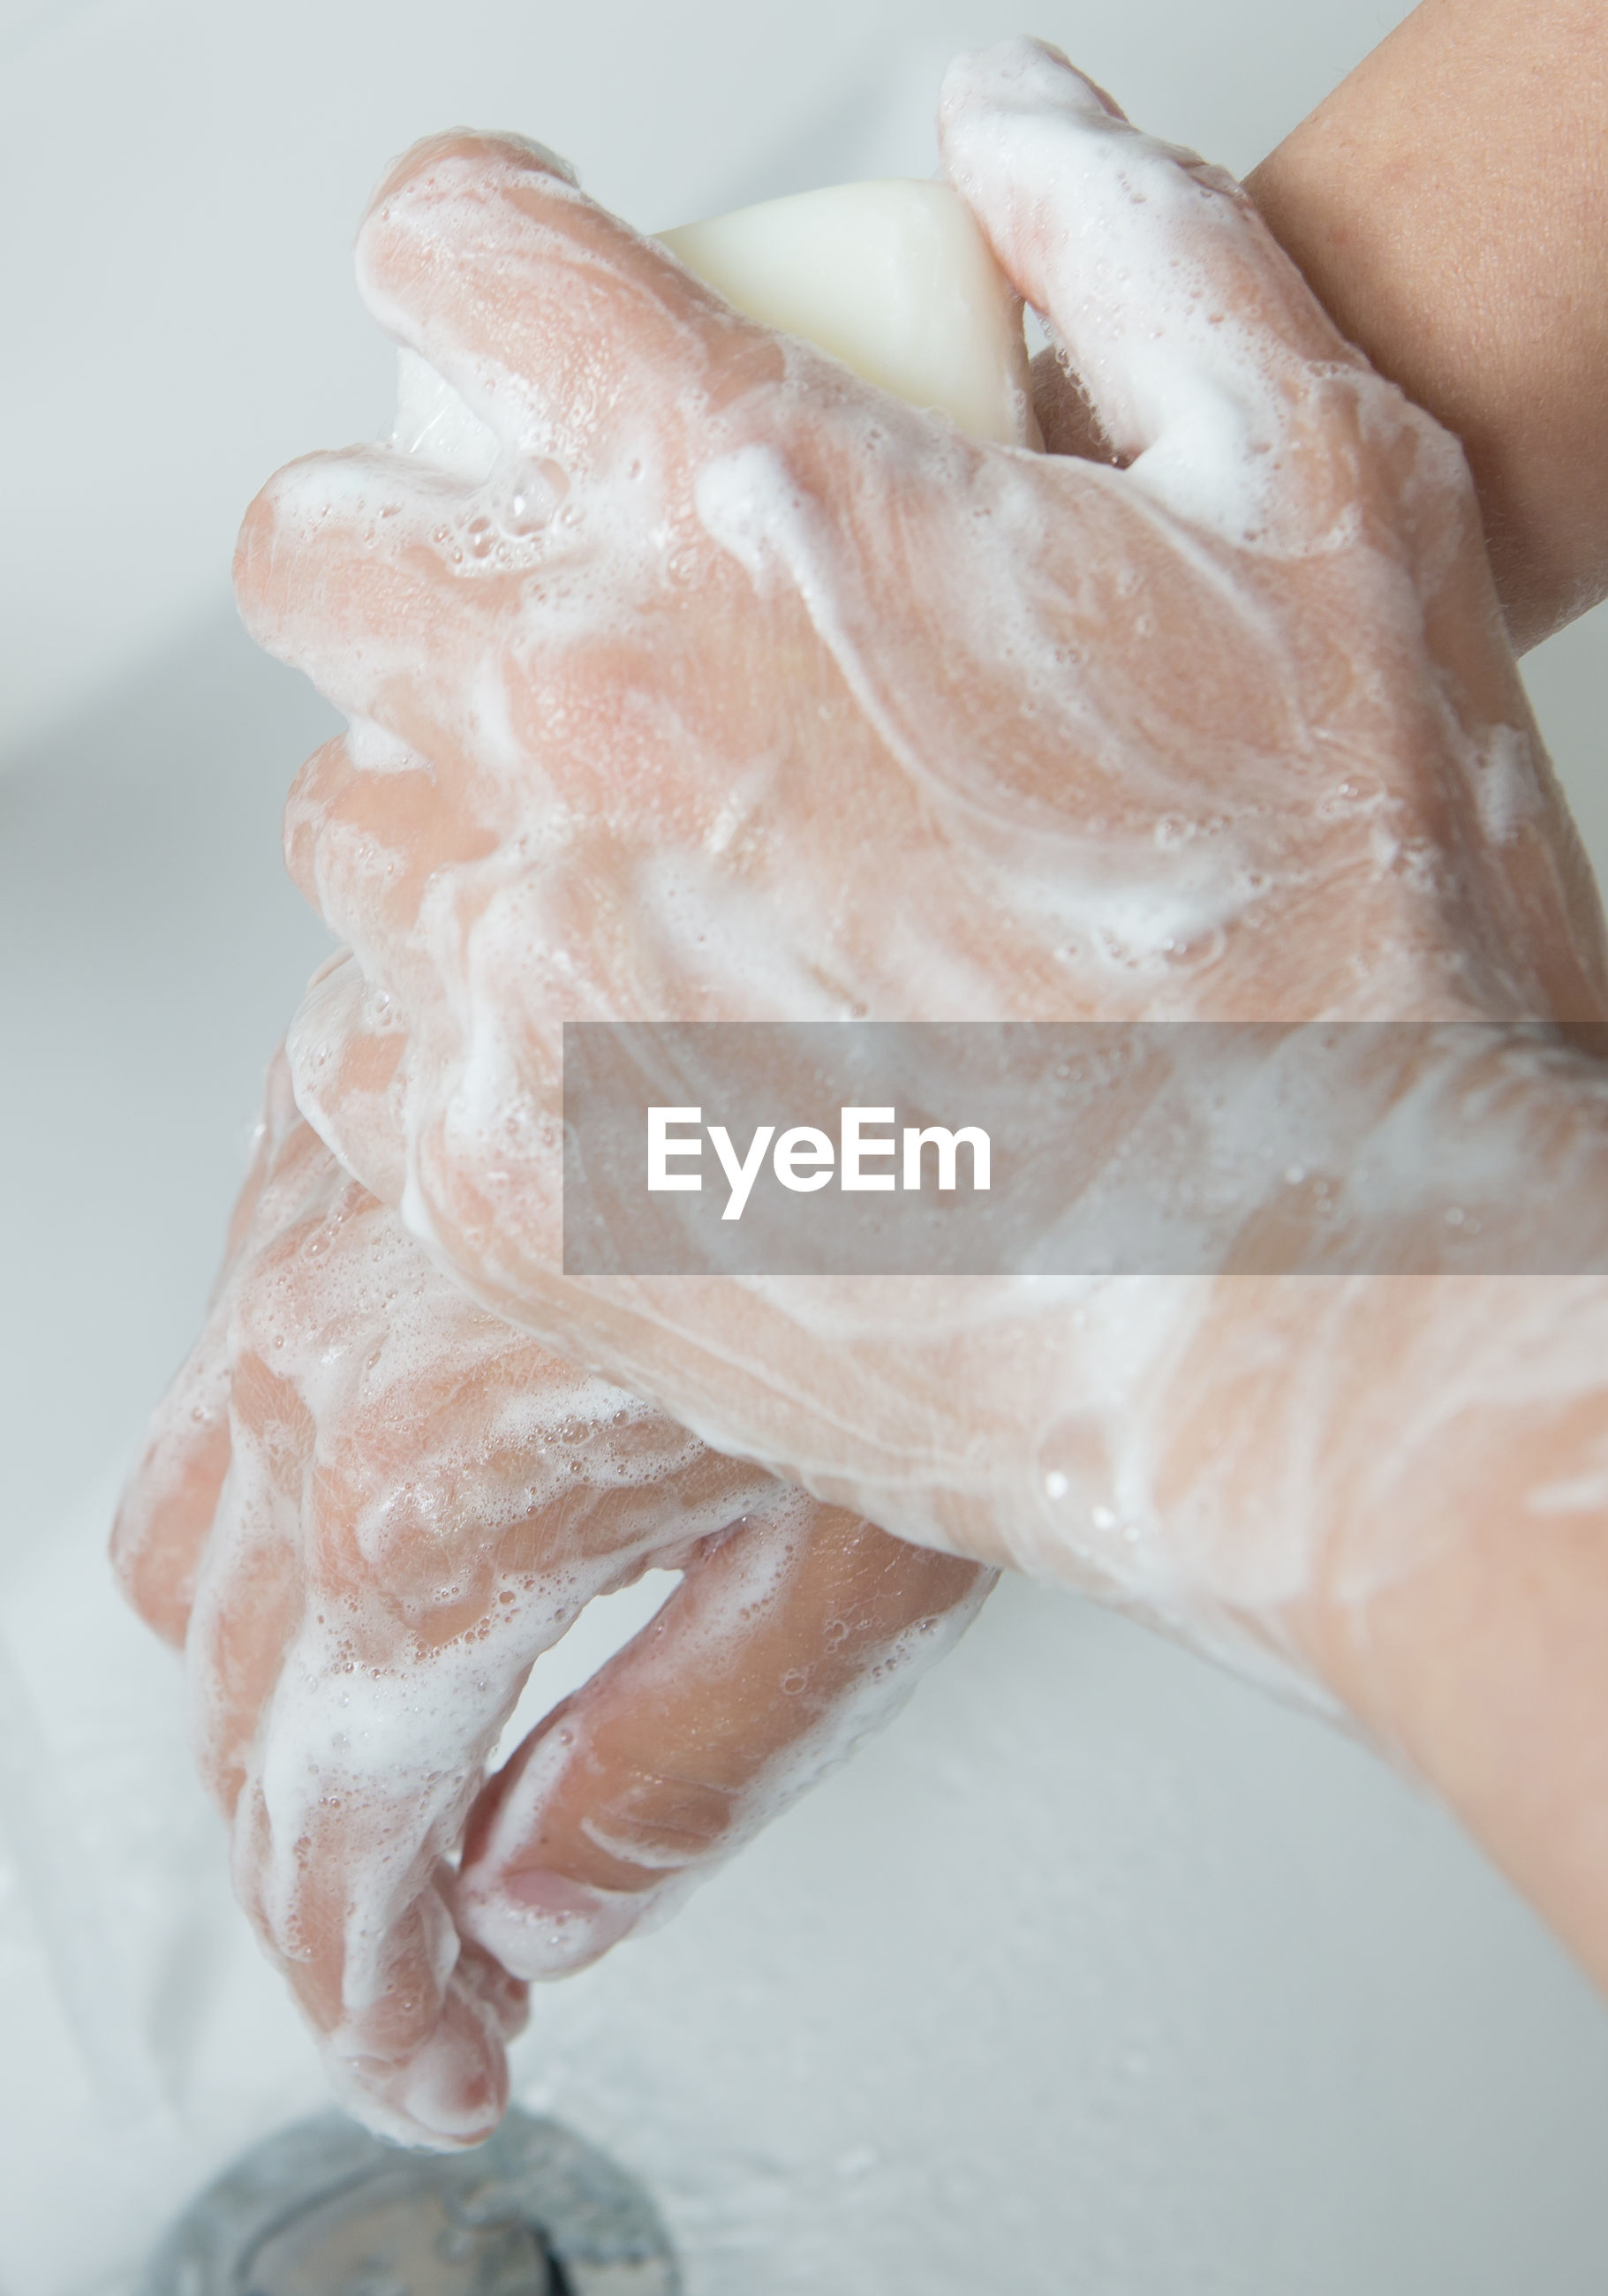 Cropped image of person washing hands in bathroom at home